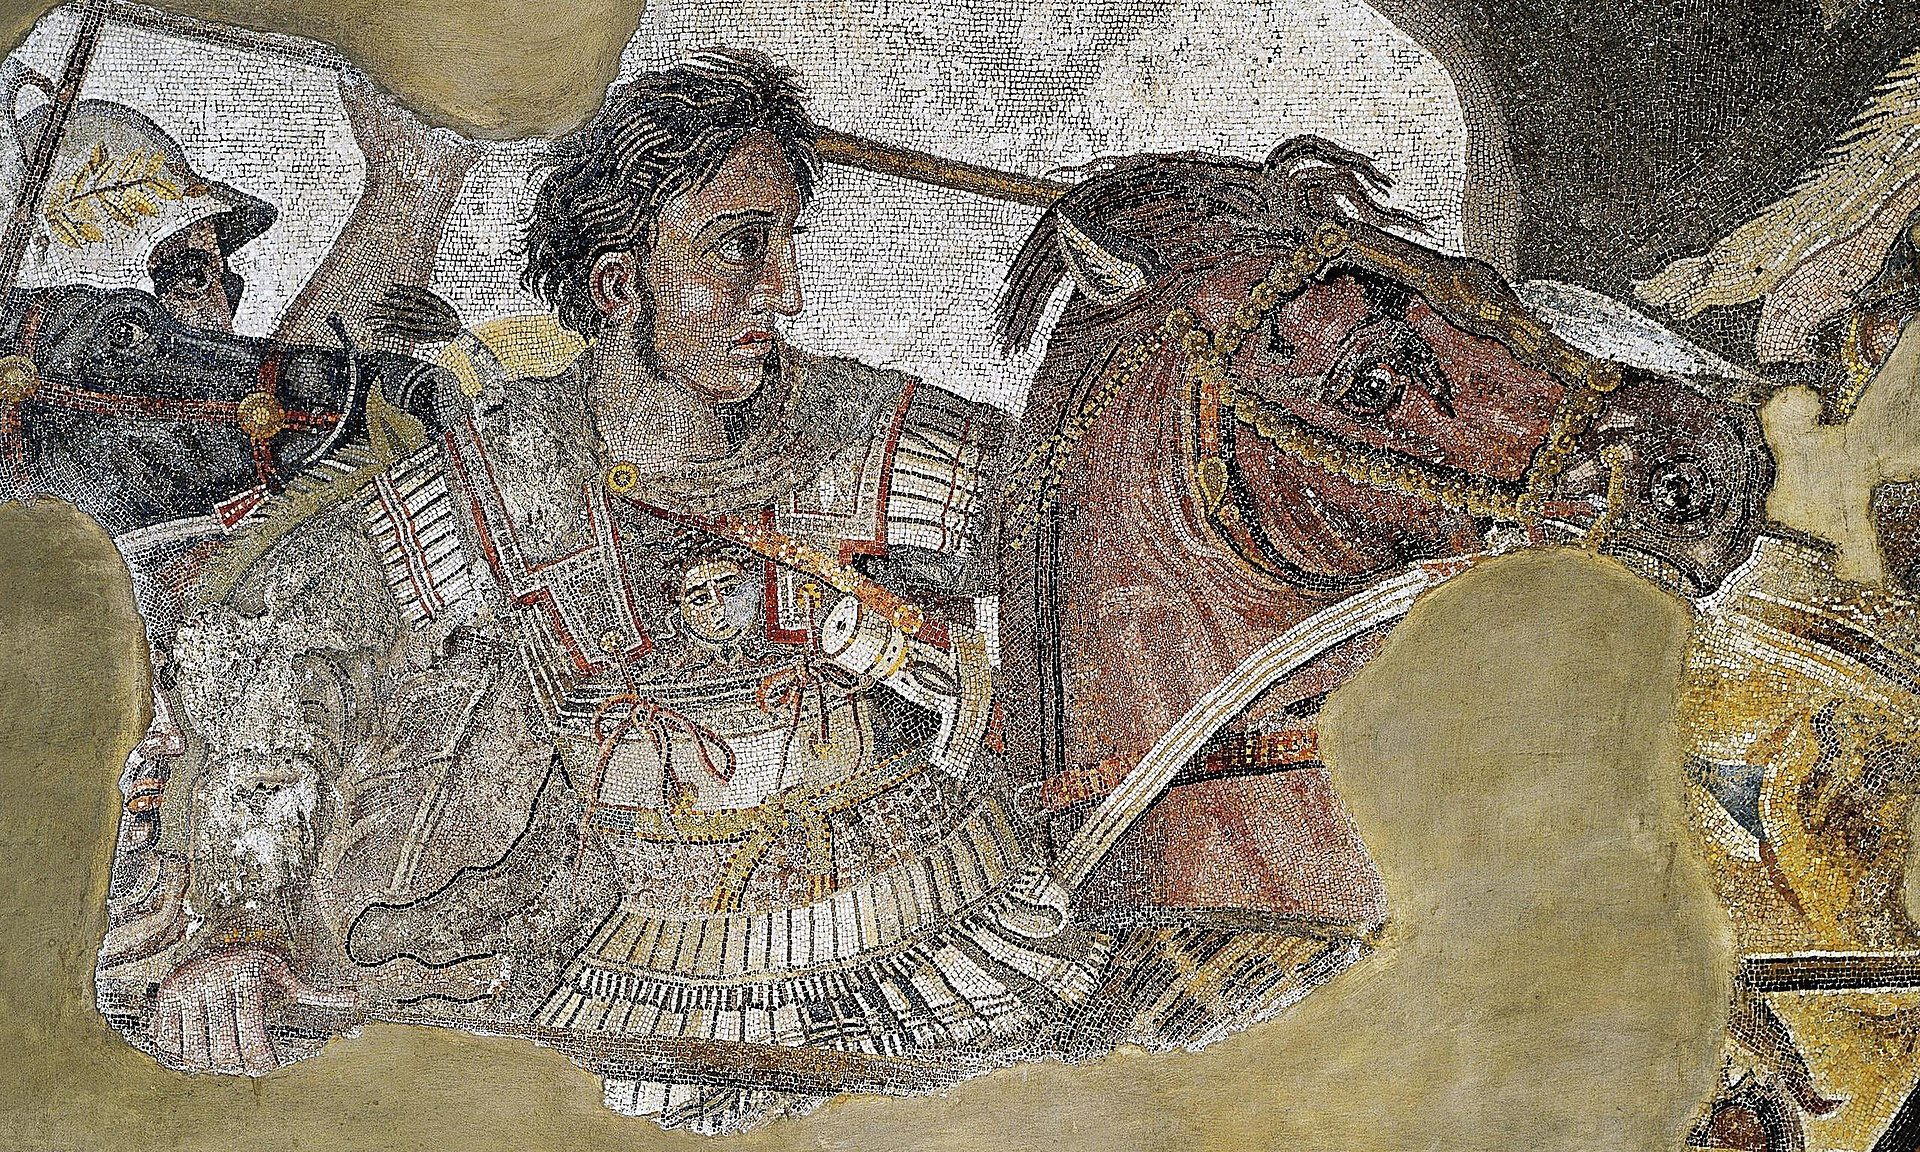 a biography and life work of alexander the great of macedonia Alexander the great: the macedonian who conquered the world you'll be taken on a whirlwind journey through alexander's life and conquests i went into this expecting a biography of alexander the great, the famous warlord and conqueror.